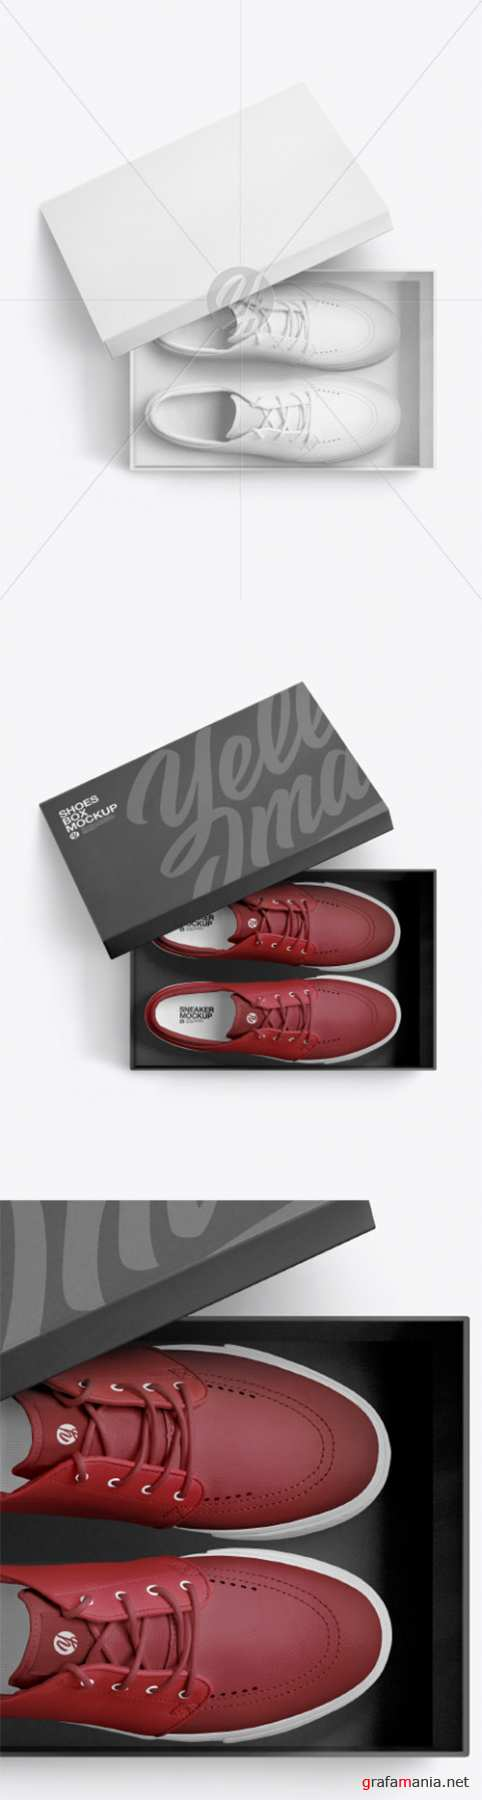 Sneakers Shoes w/ Box Mockup 60996